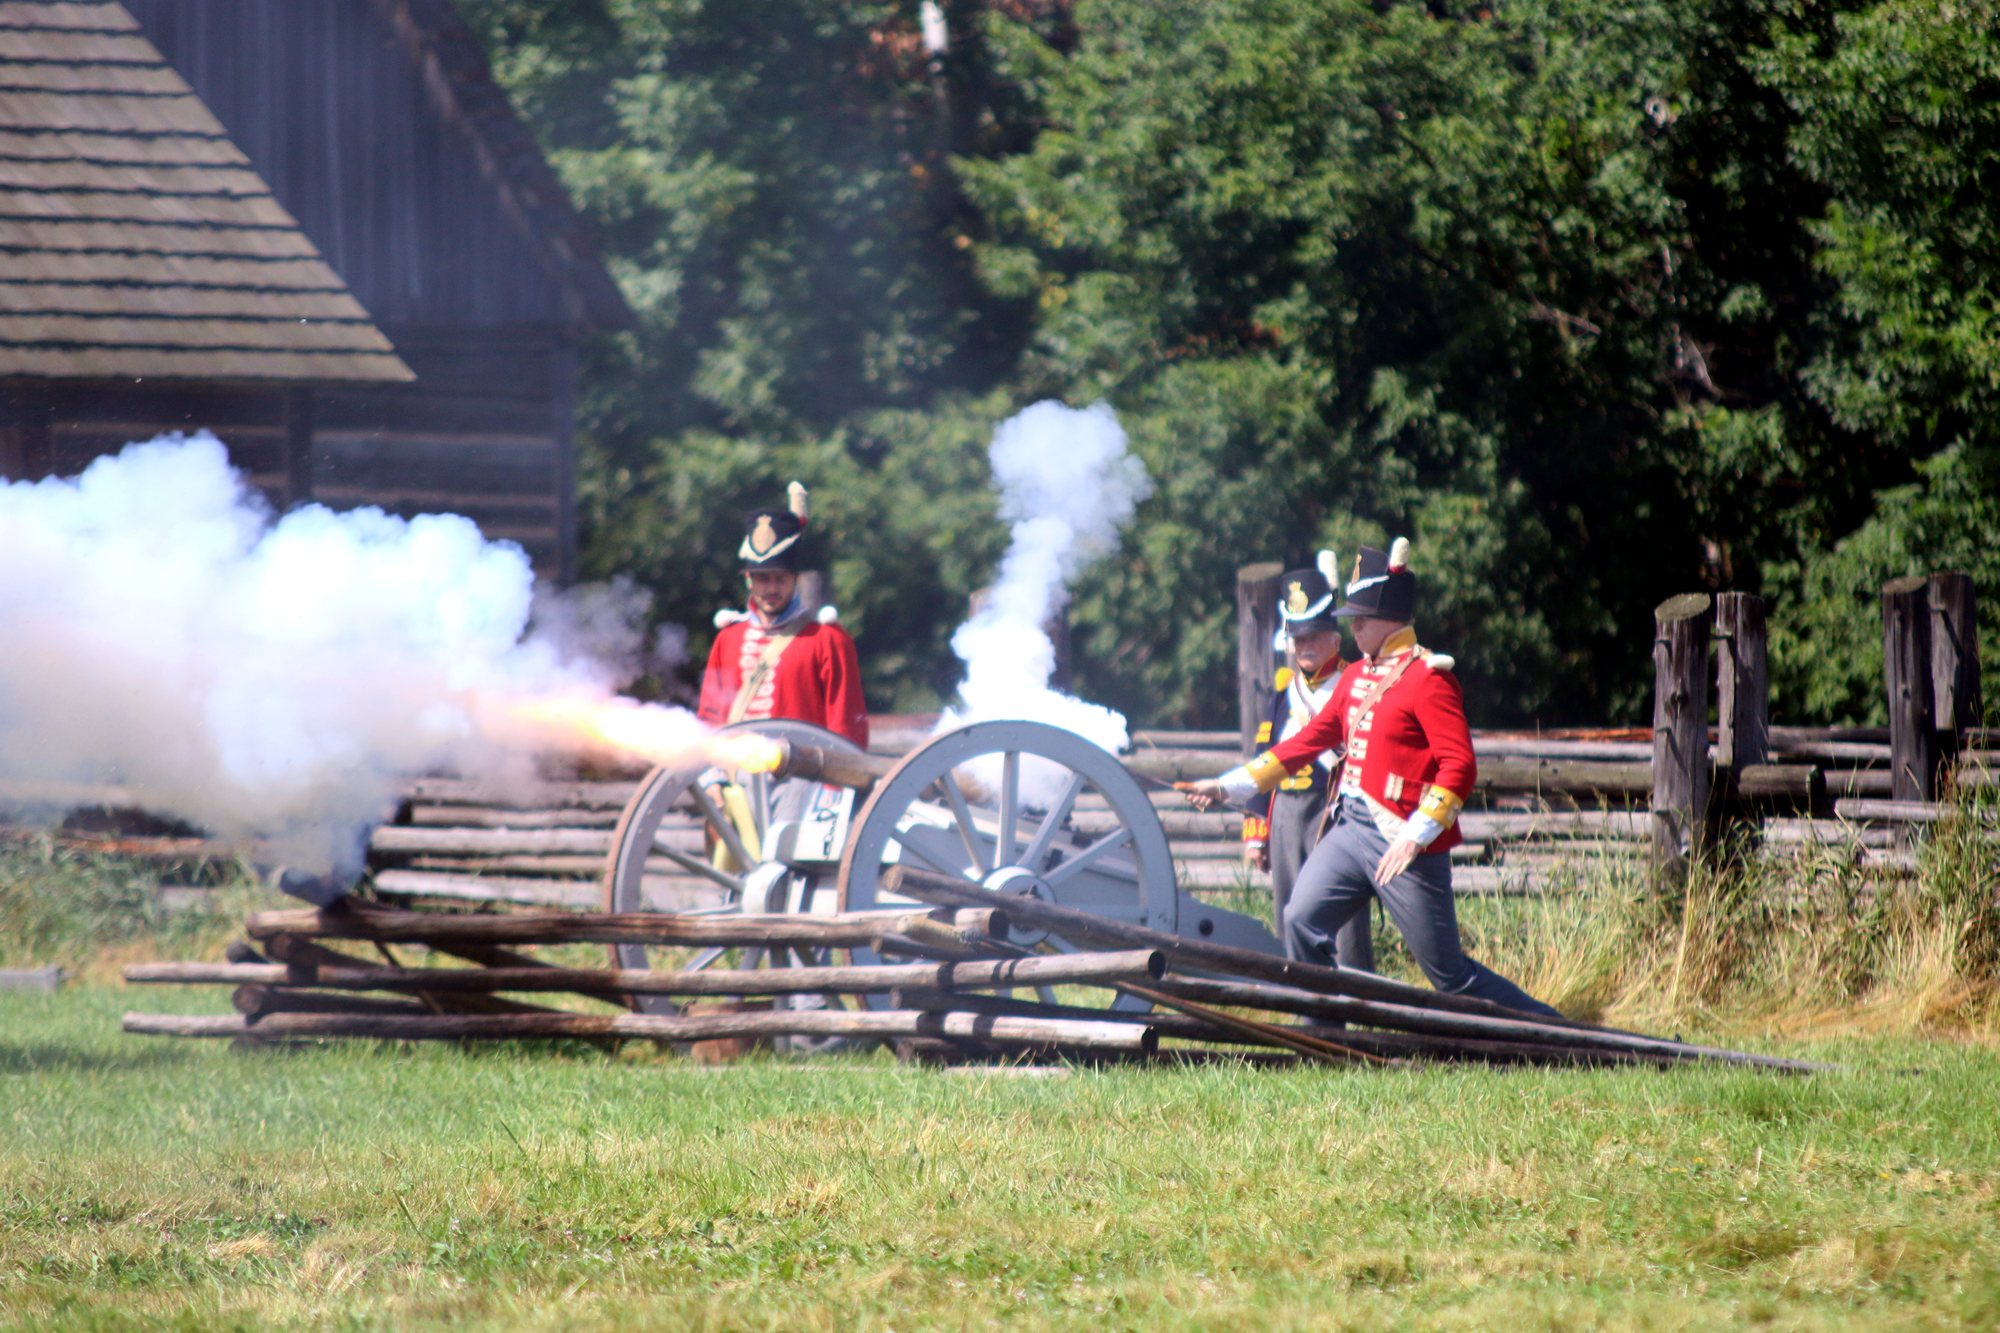 Canons thunder during reenactment of War of 1812 battle (14 photos)